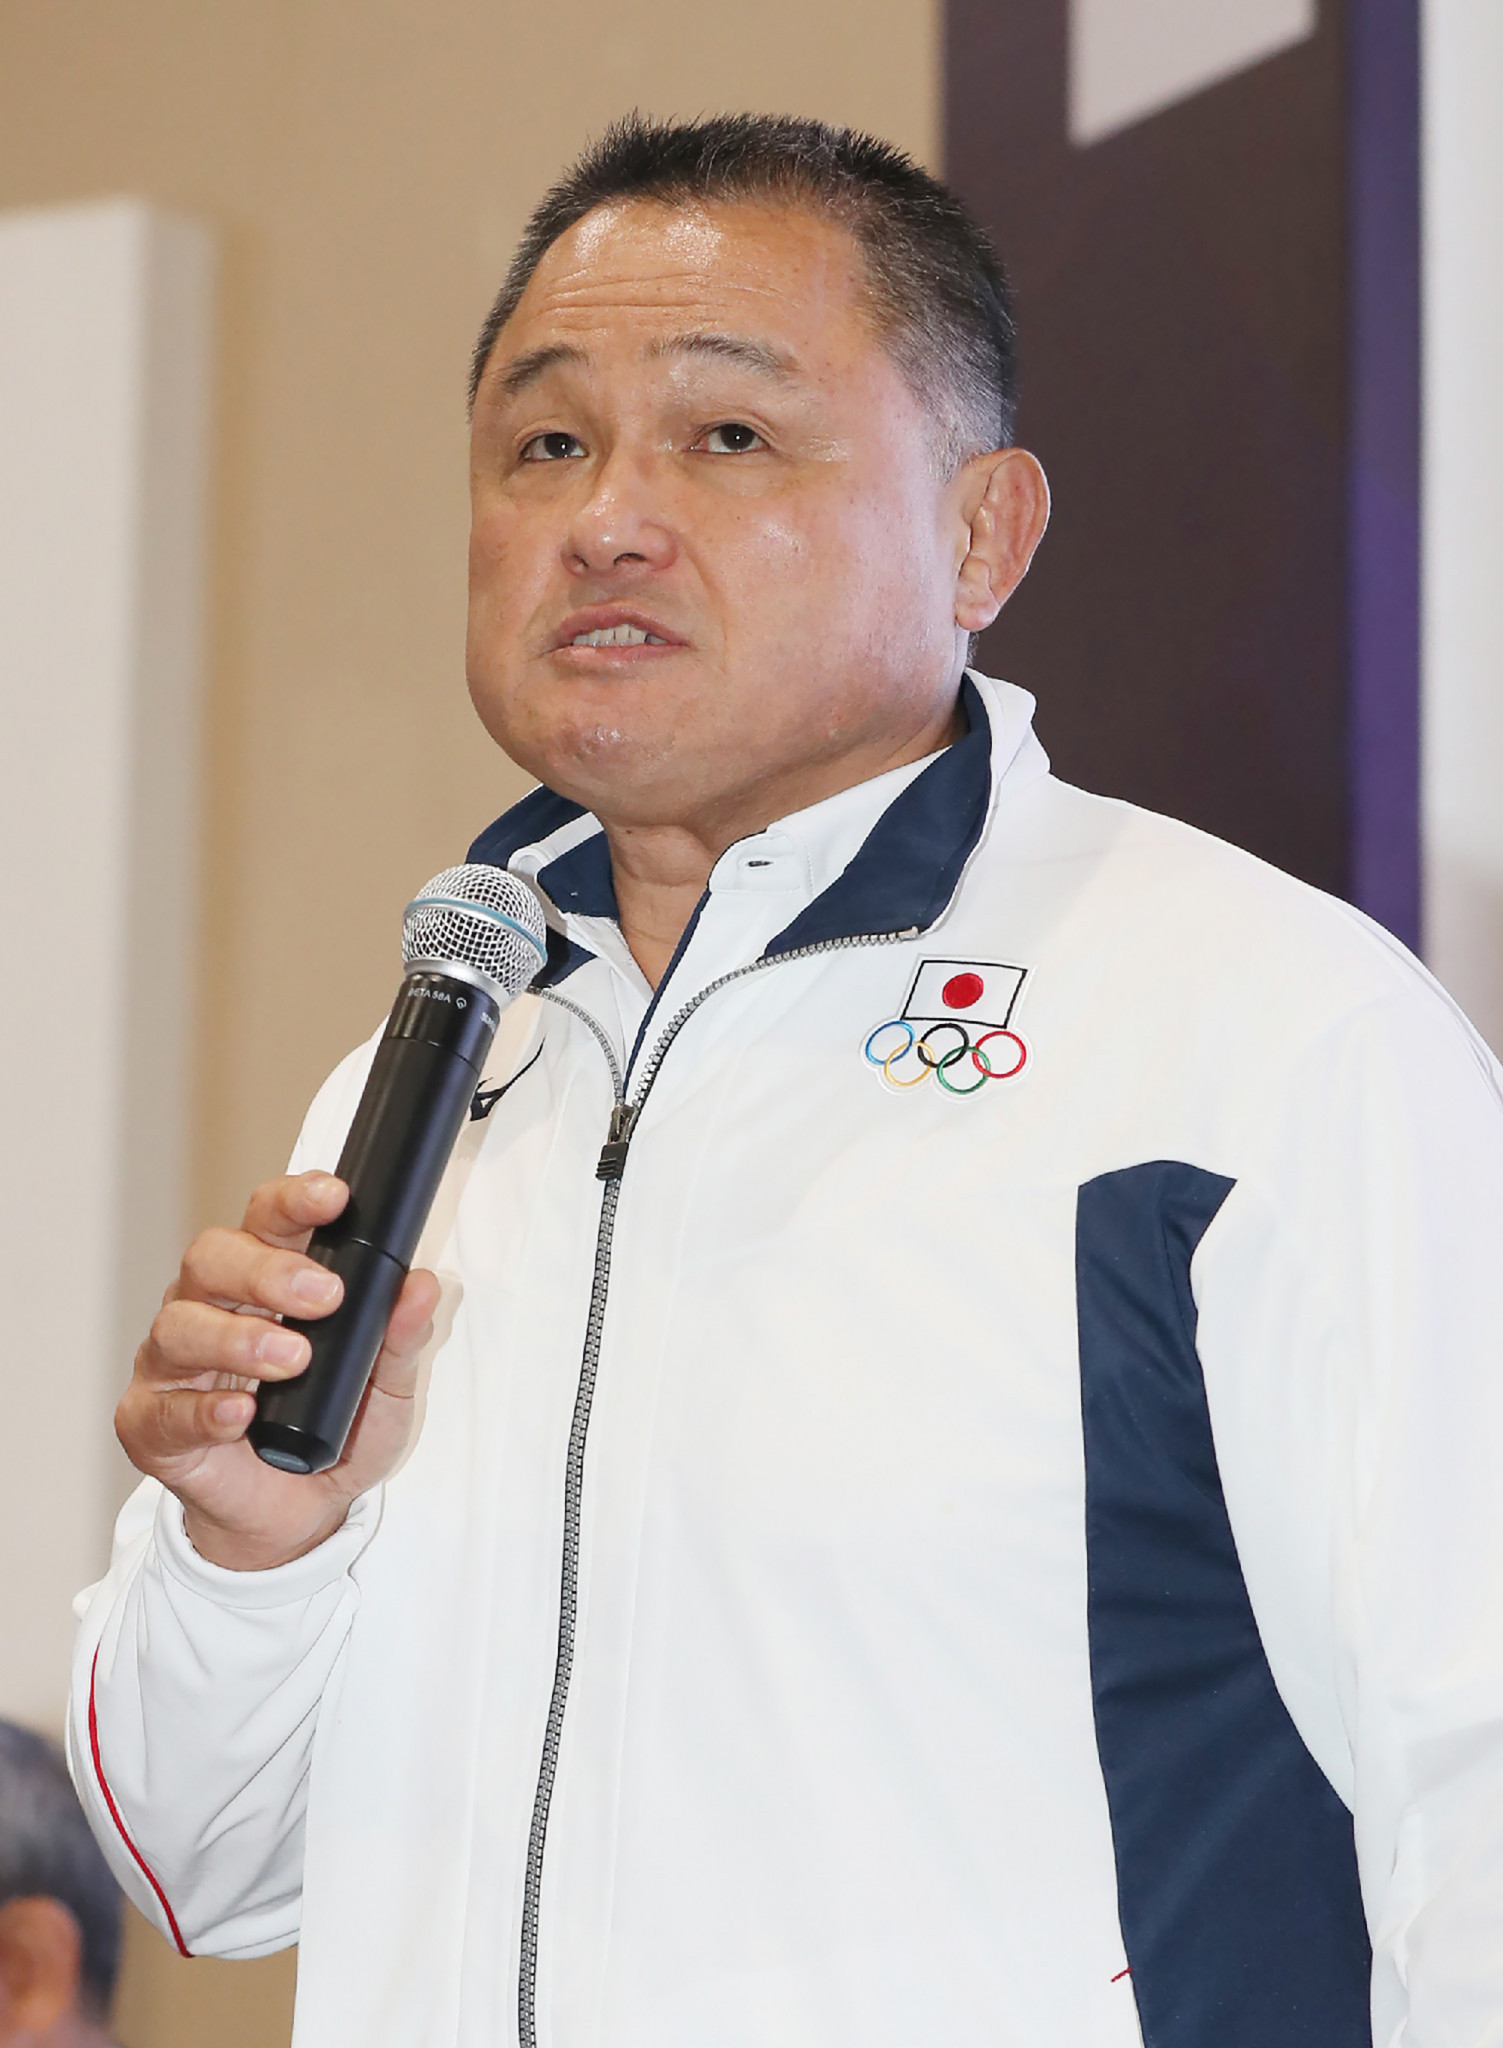 Olympic judo gold medallist and All Japan Judo Federation President Yasuhiro Yamashita is expected to be among the names considered to join the IOC as a replacement for Tsunekazu Takeda ©Getty Images